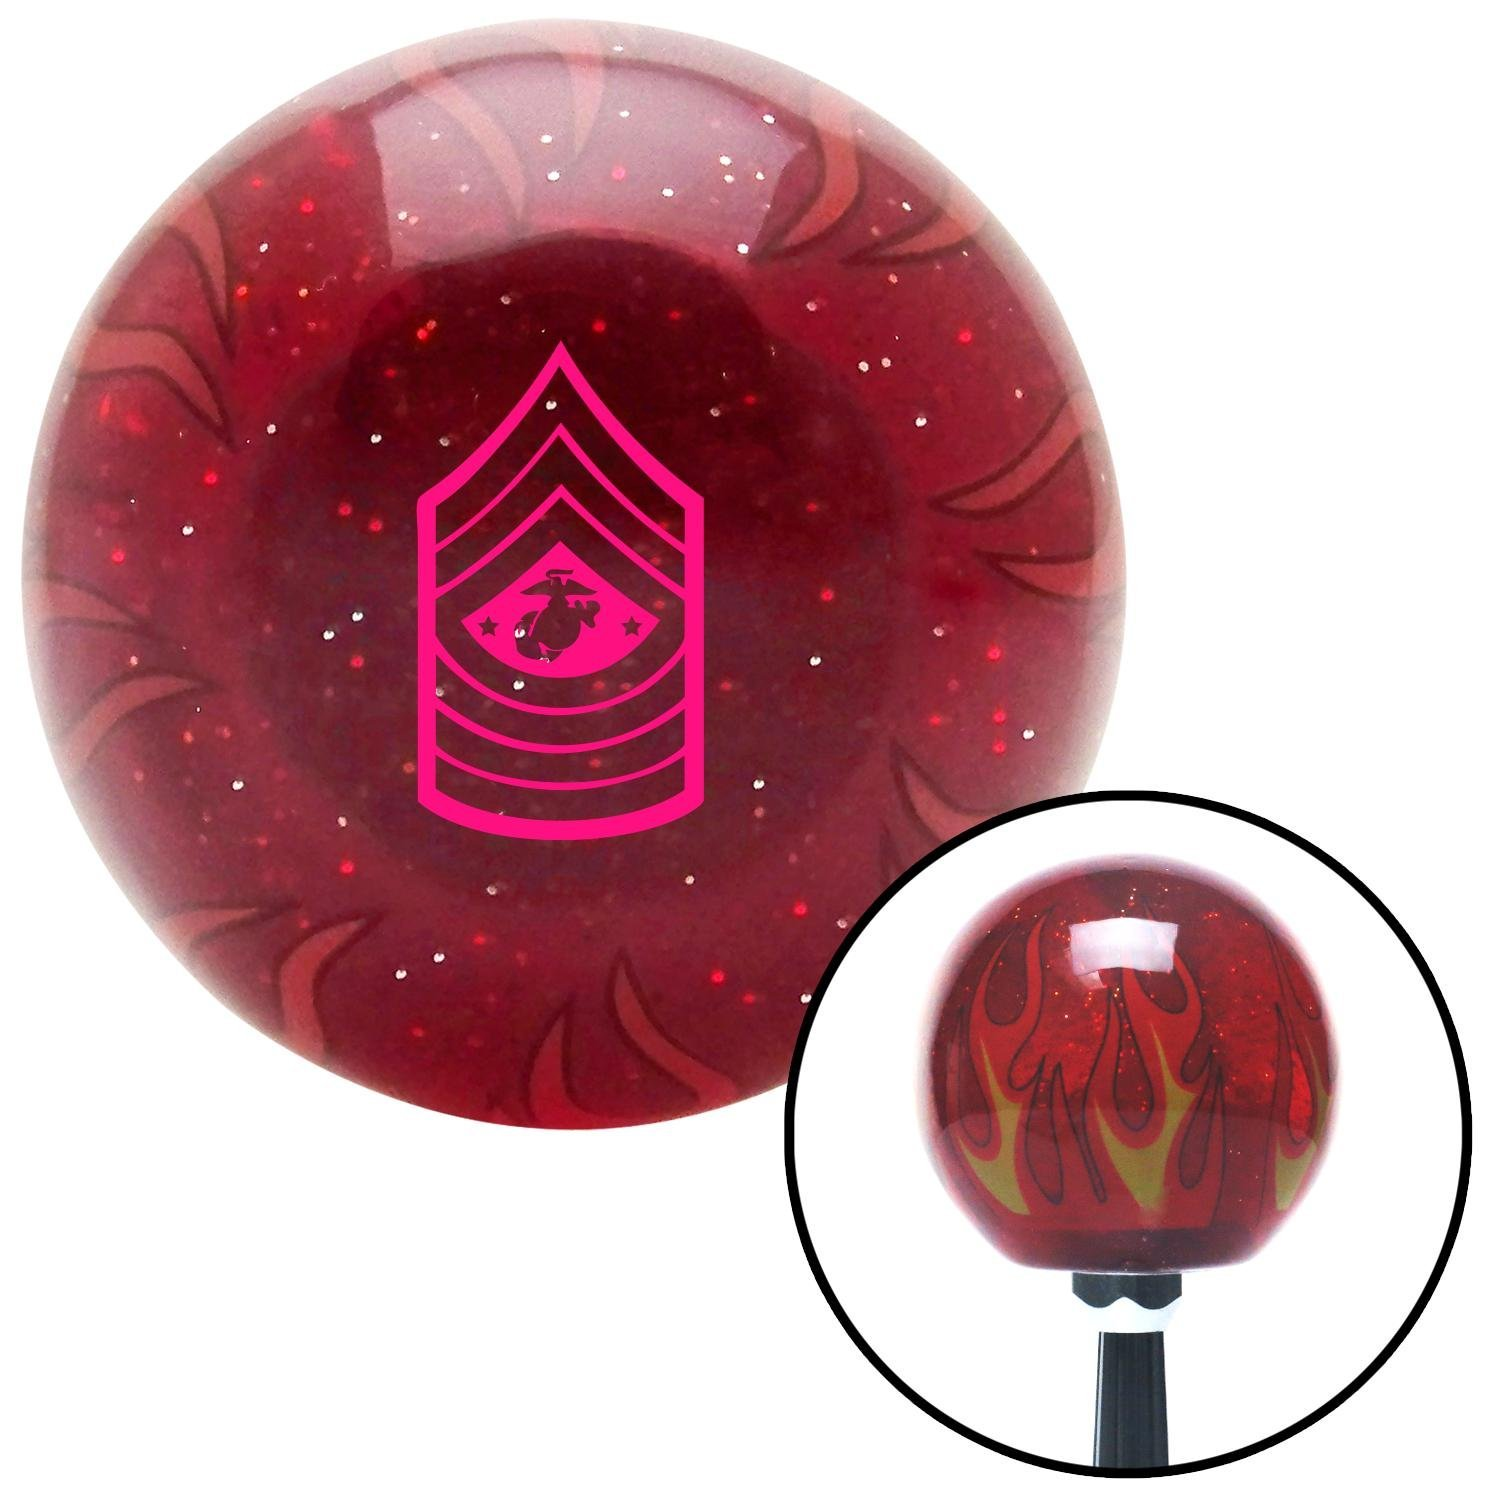 American Shifter 241666 Red Flame Metal Flake Shift Knob with M16 x 1.5 Insert Pink 11 Sergeant Major of The Marine Corps